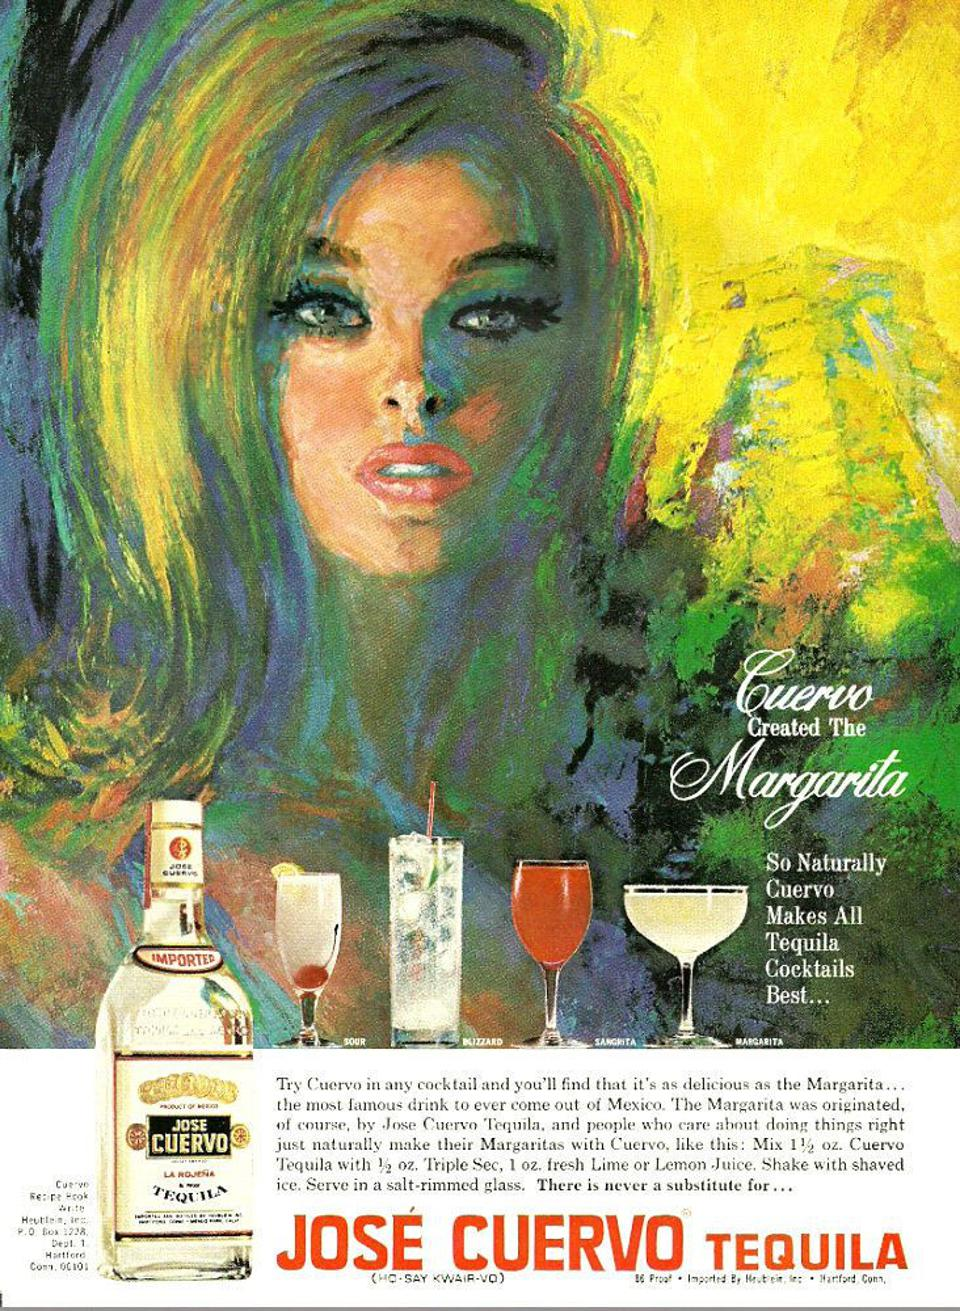 Cuervo margarita poster from the 1960s